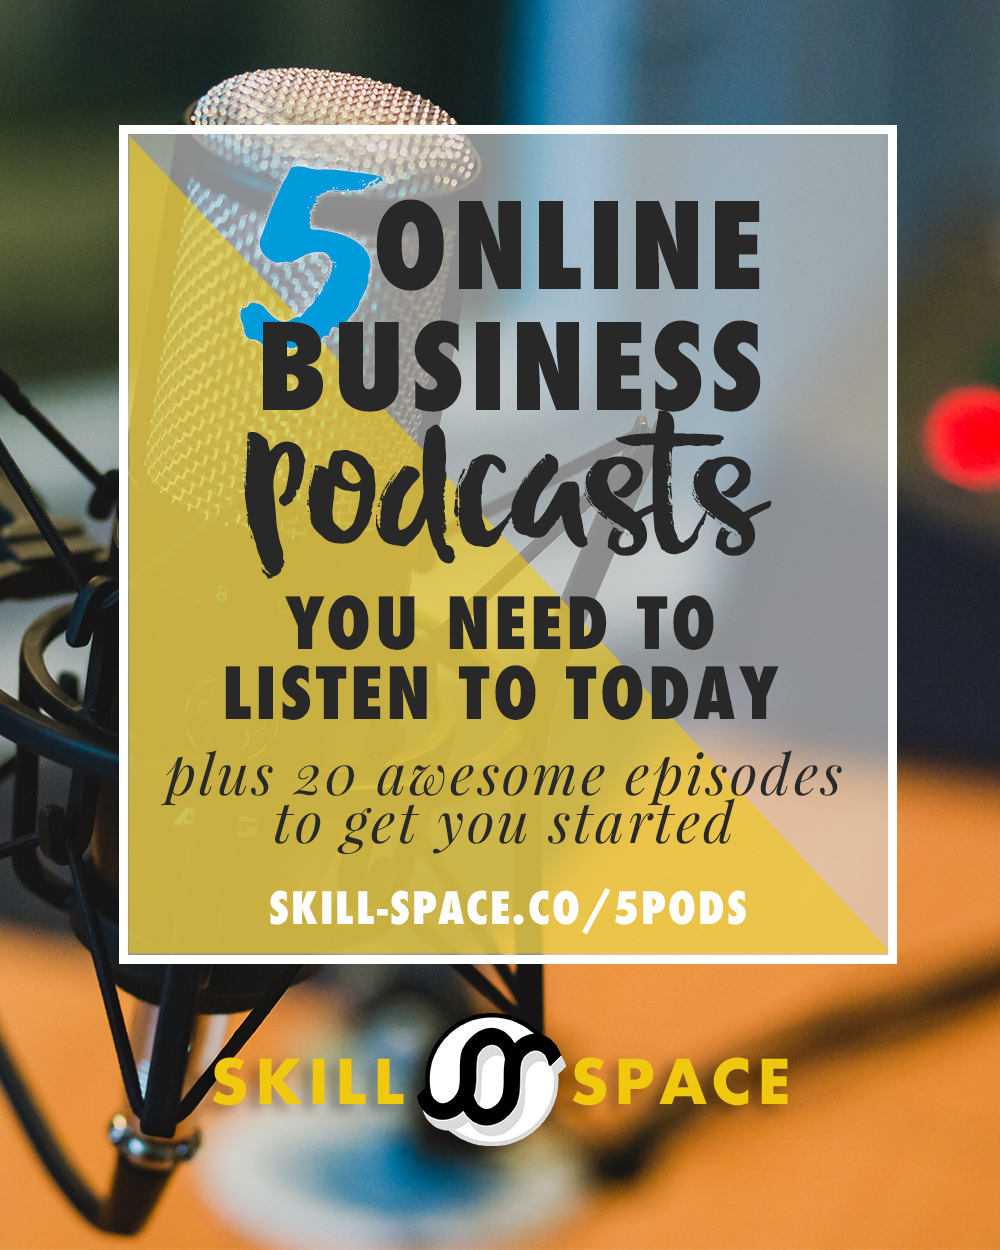 OnlineBiz-Podcasts5.jpg